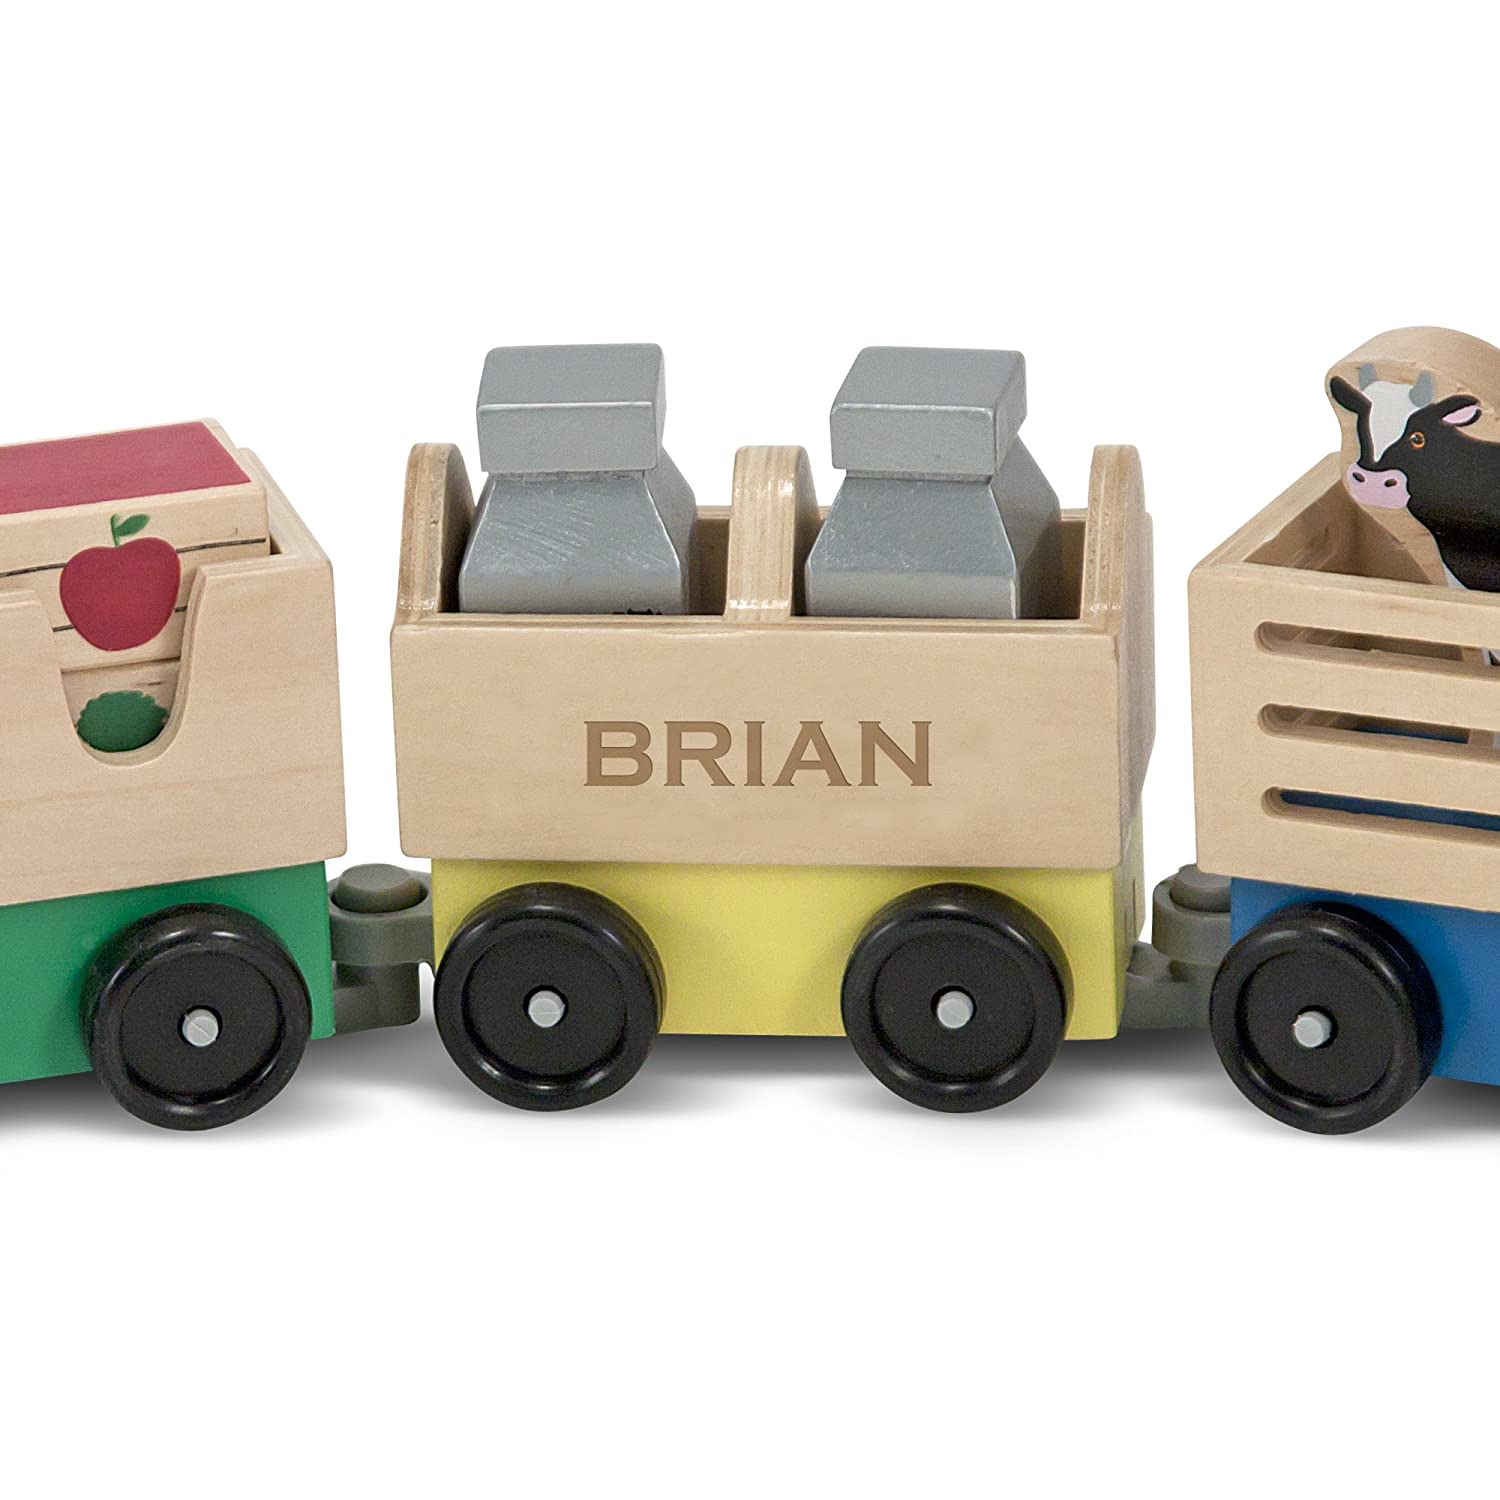 Swell Melissa Doug Personalized Farm Train Set 3 Linking Cars Classic Wooden Toy Machost Co Dining Chair Design Ideas Machostcouk